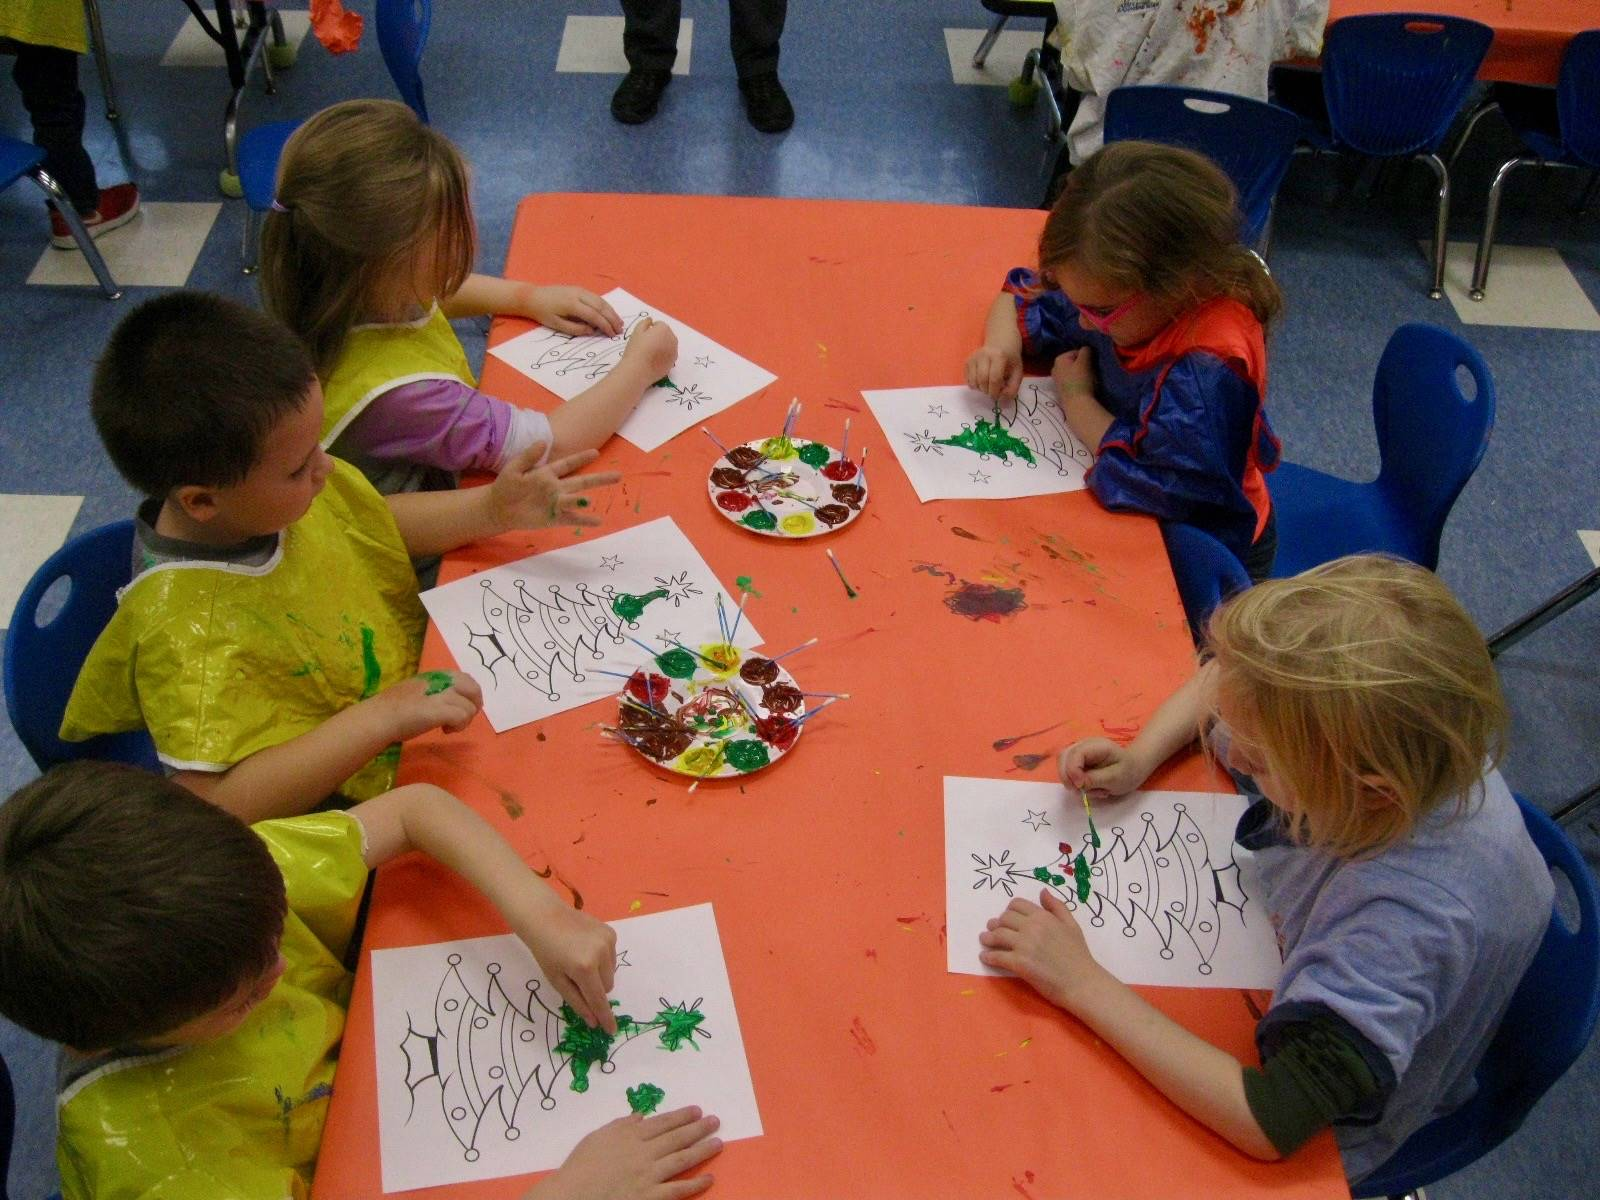 5 students paint Christmas trees.